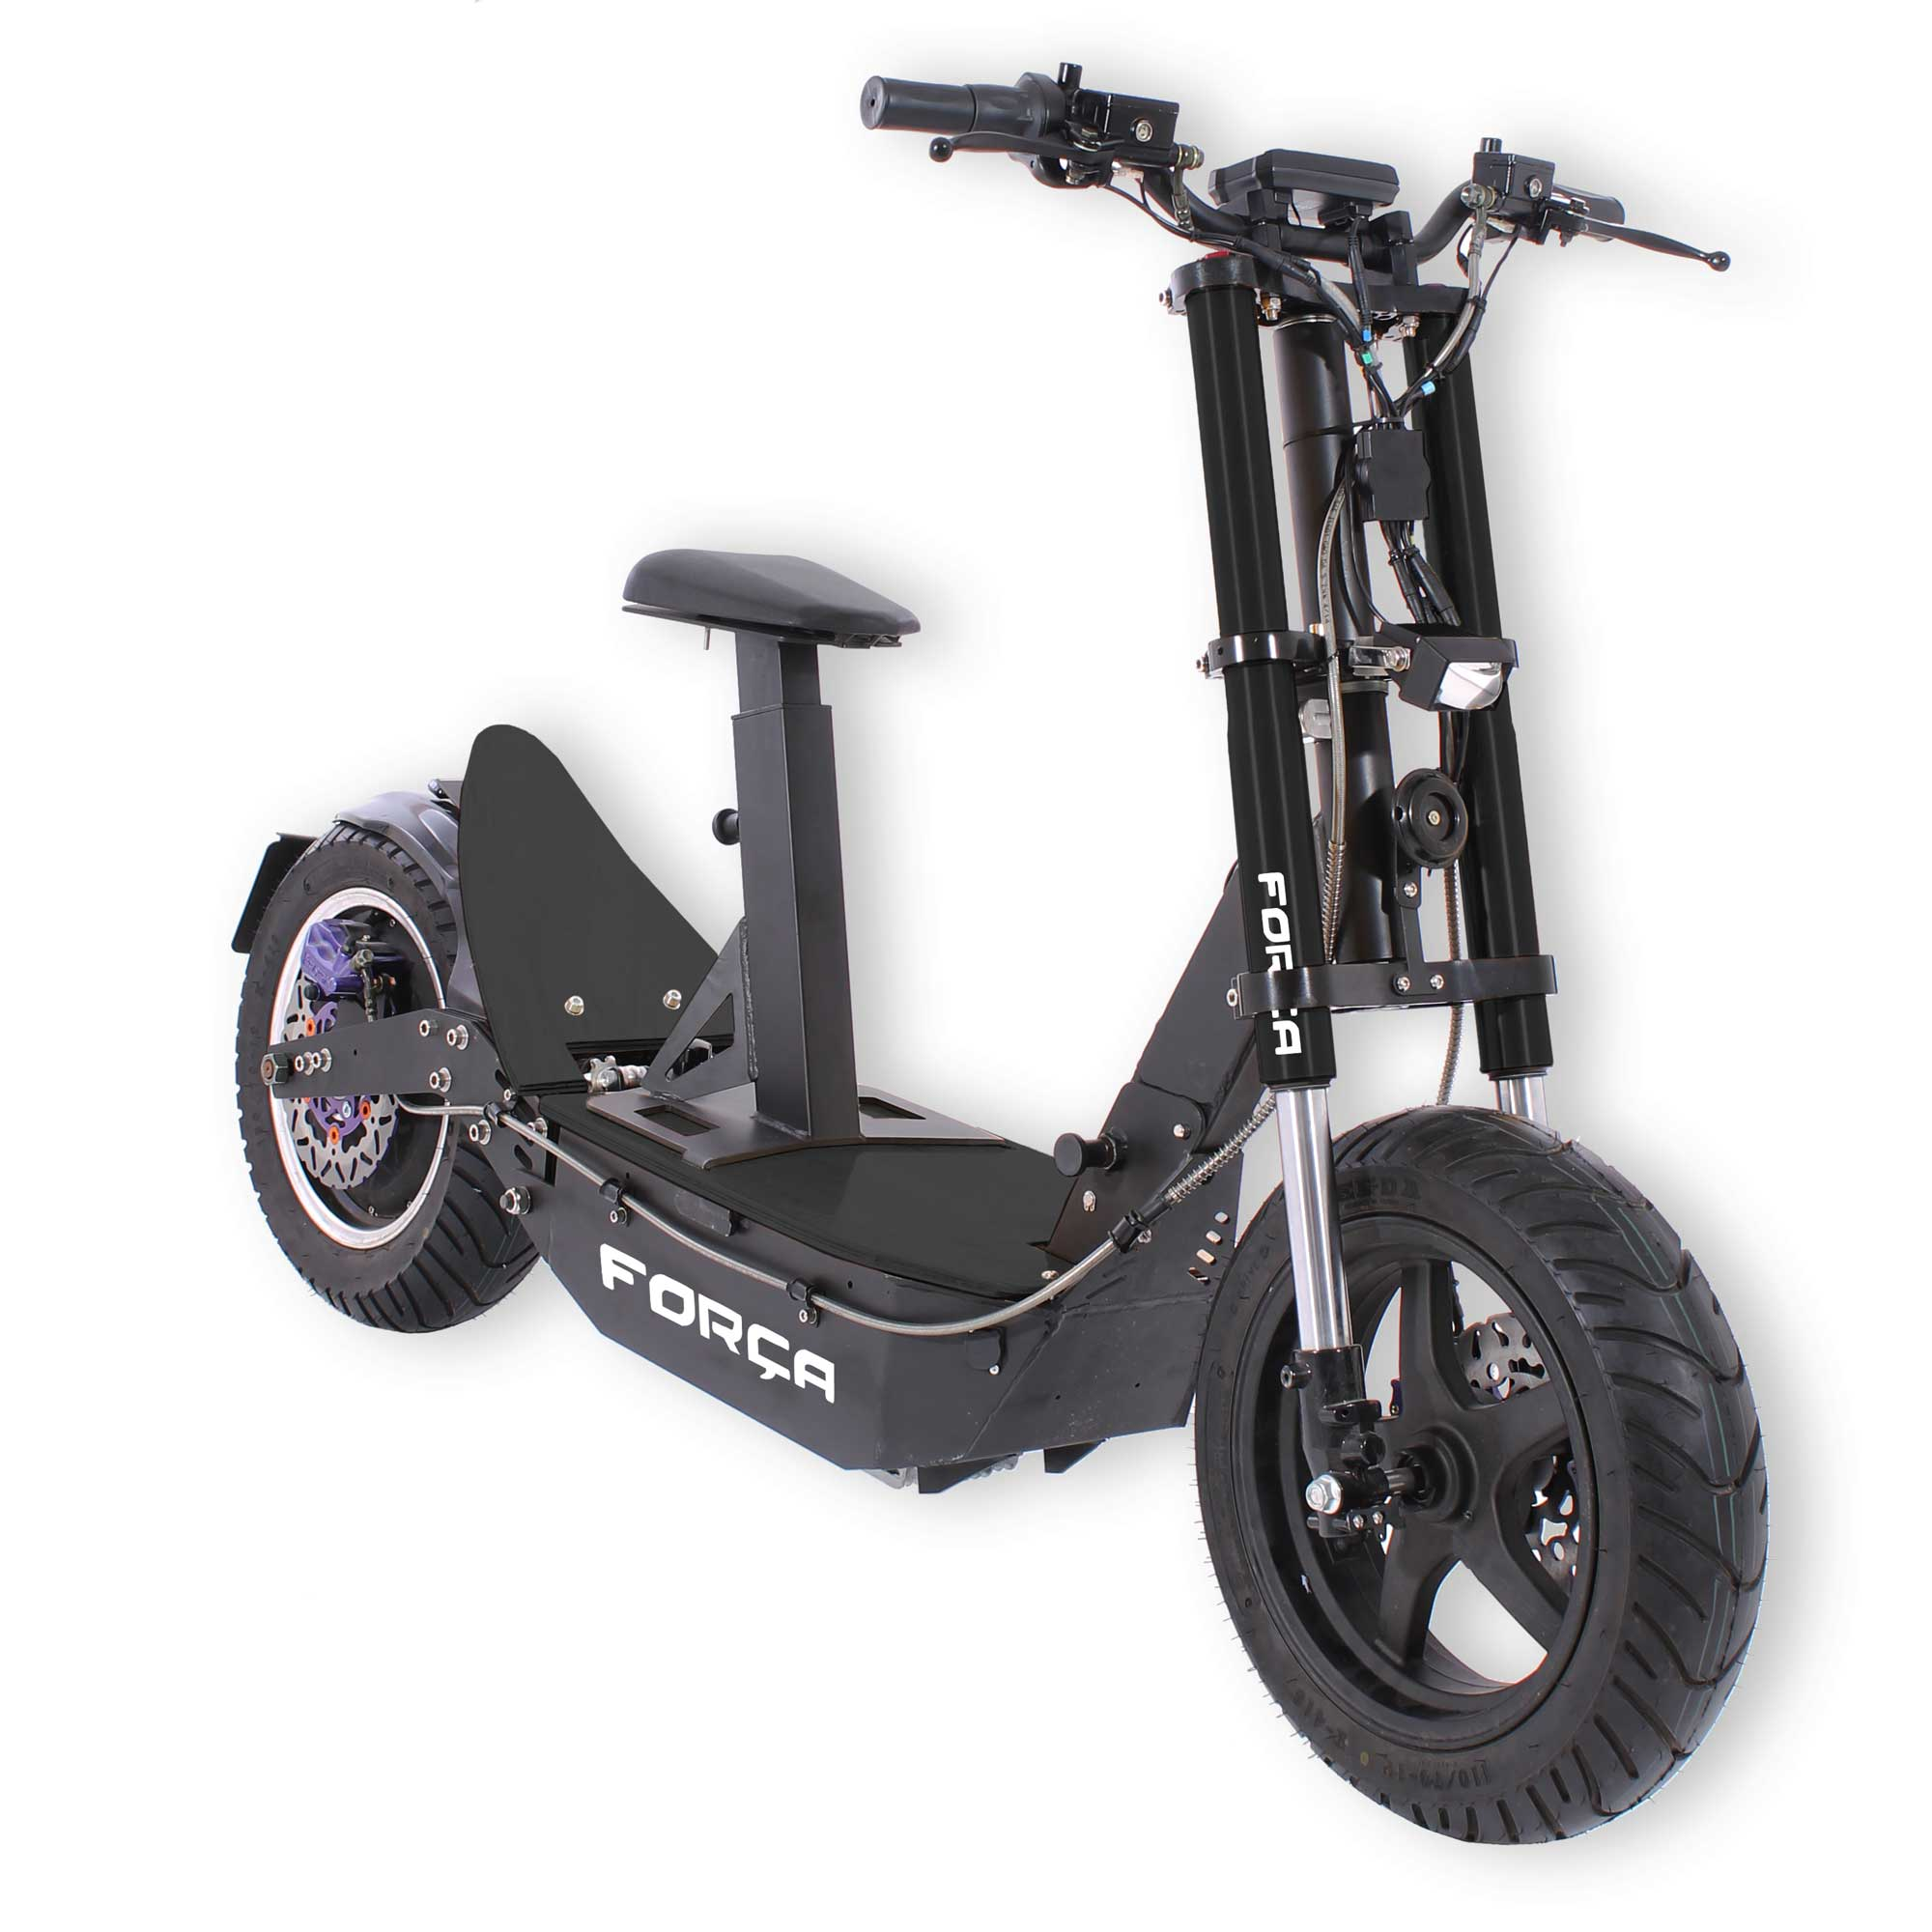 forca bossman xl 2000w sxx pro big wheel scooter schwarz e. Black Bedroom Furniture Sets. Home Design Ideas